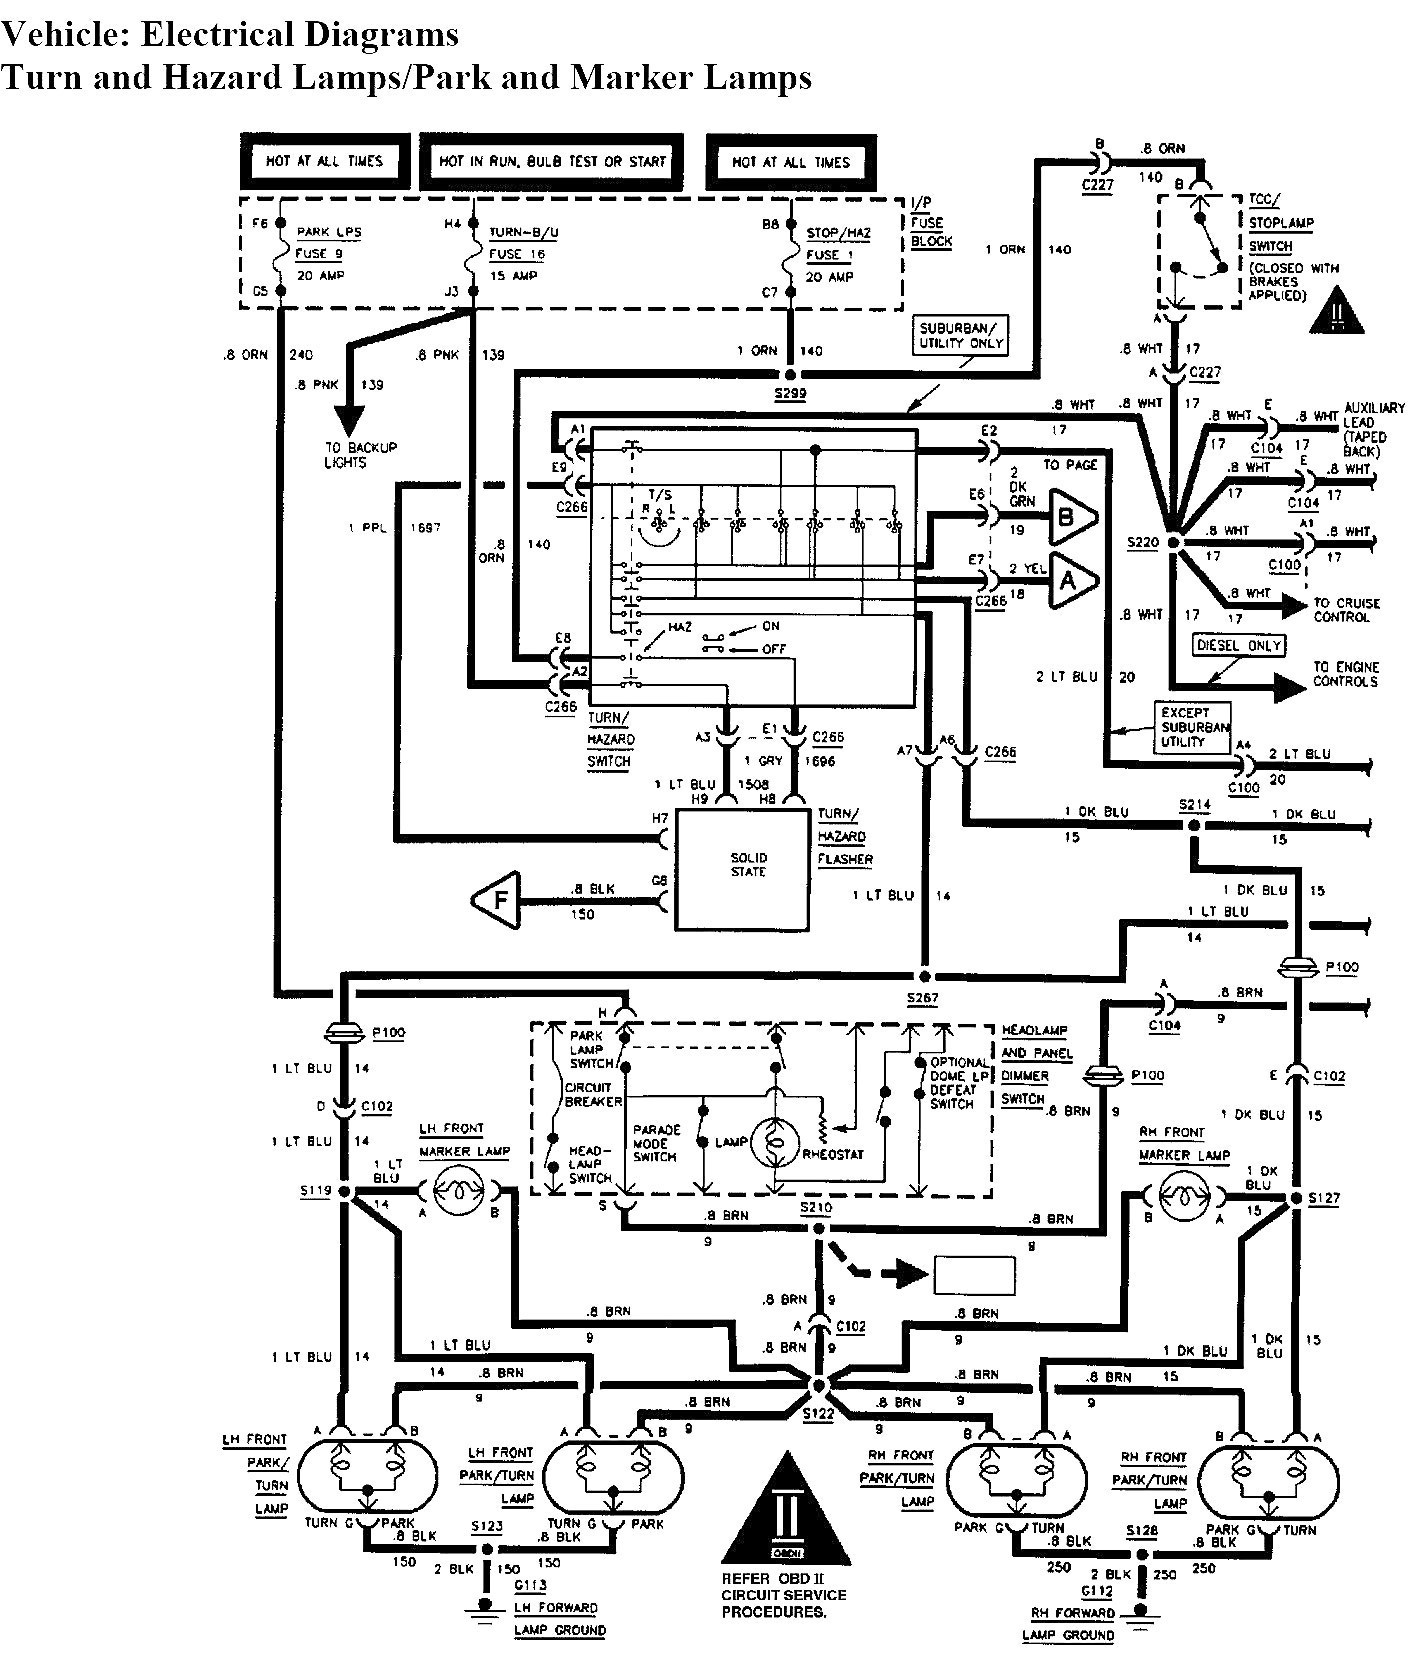 light wiring diagram 2002 chevy tahoe wire center u2022 rh wildcatgroup co 2002 Chevy Tahoe Wiring Diagram Wiring for 2003 Tahoe Radio